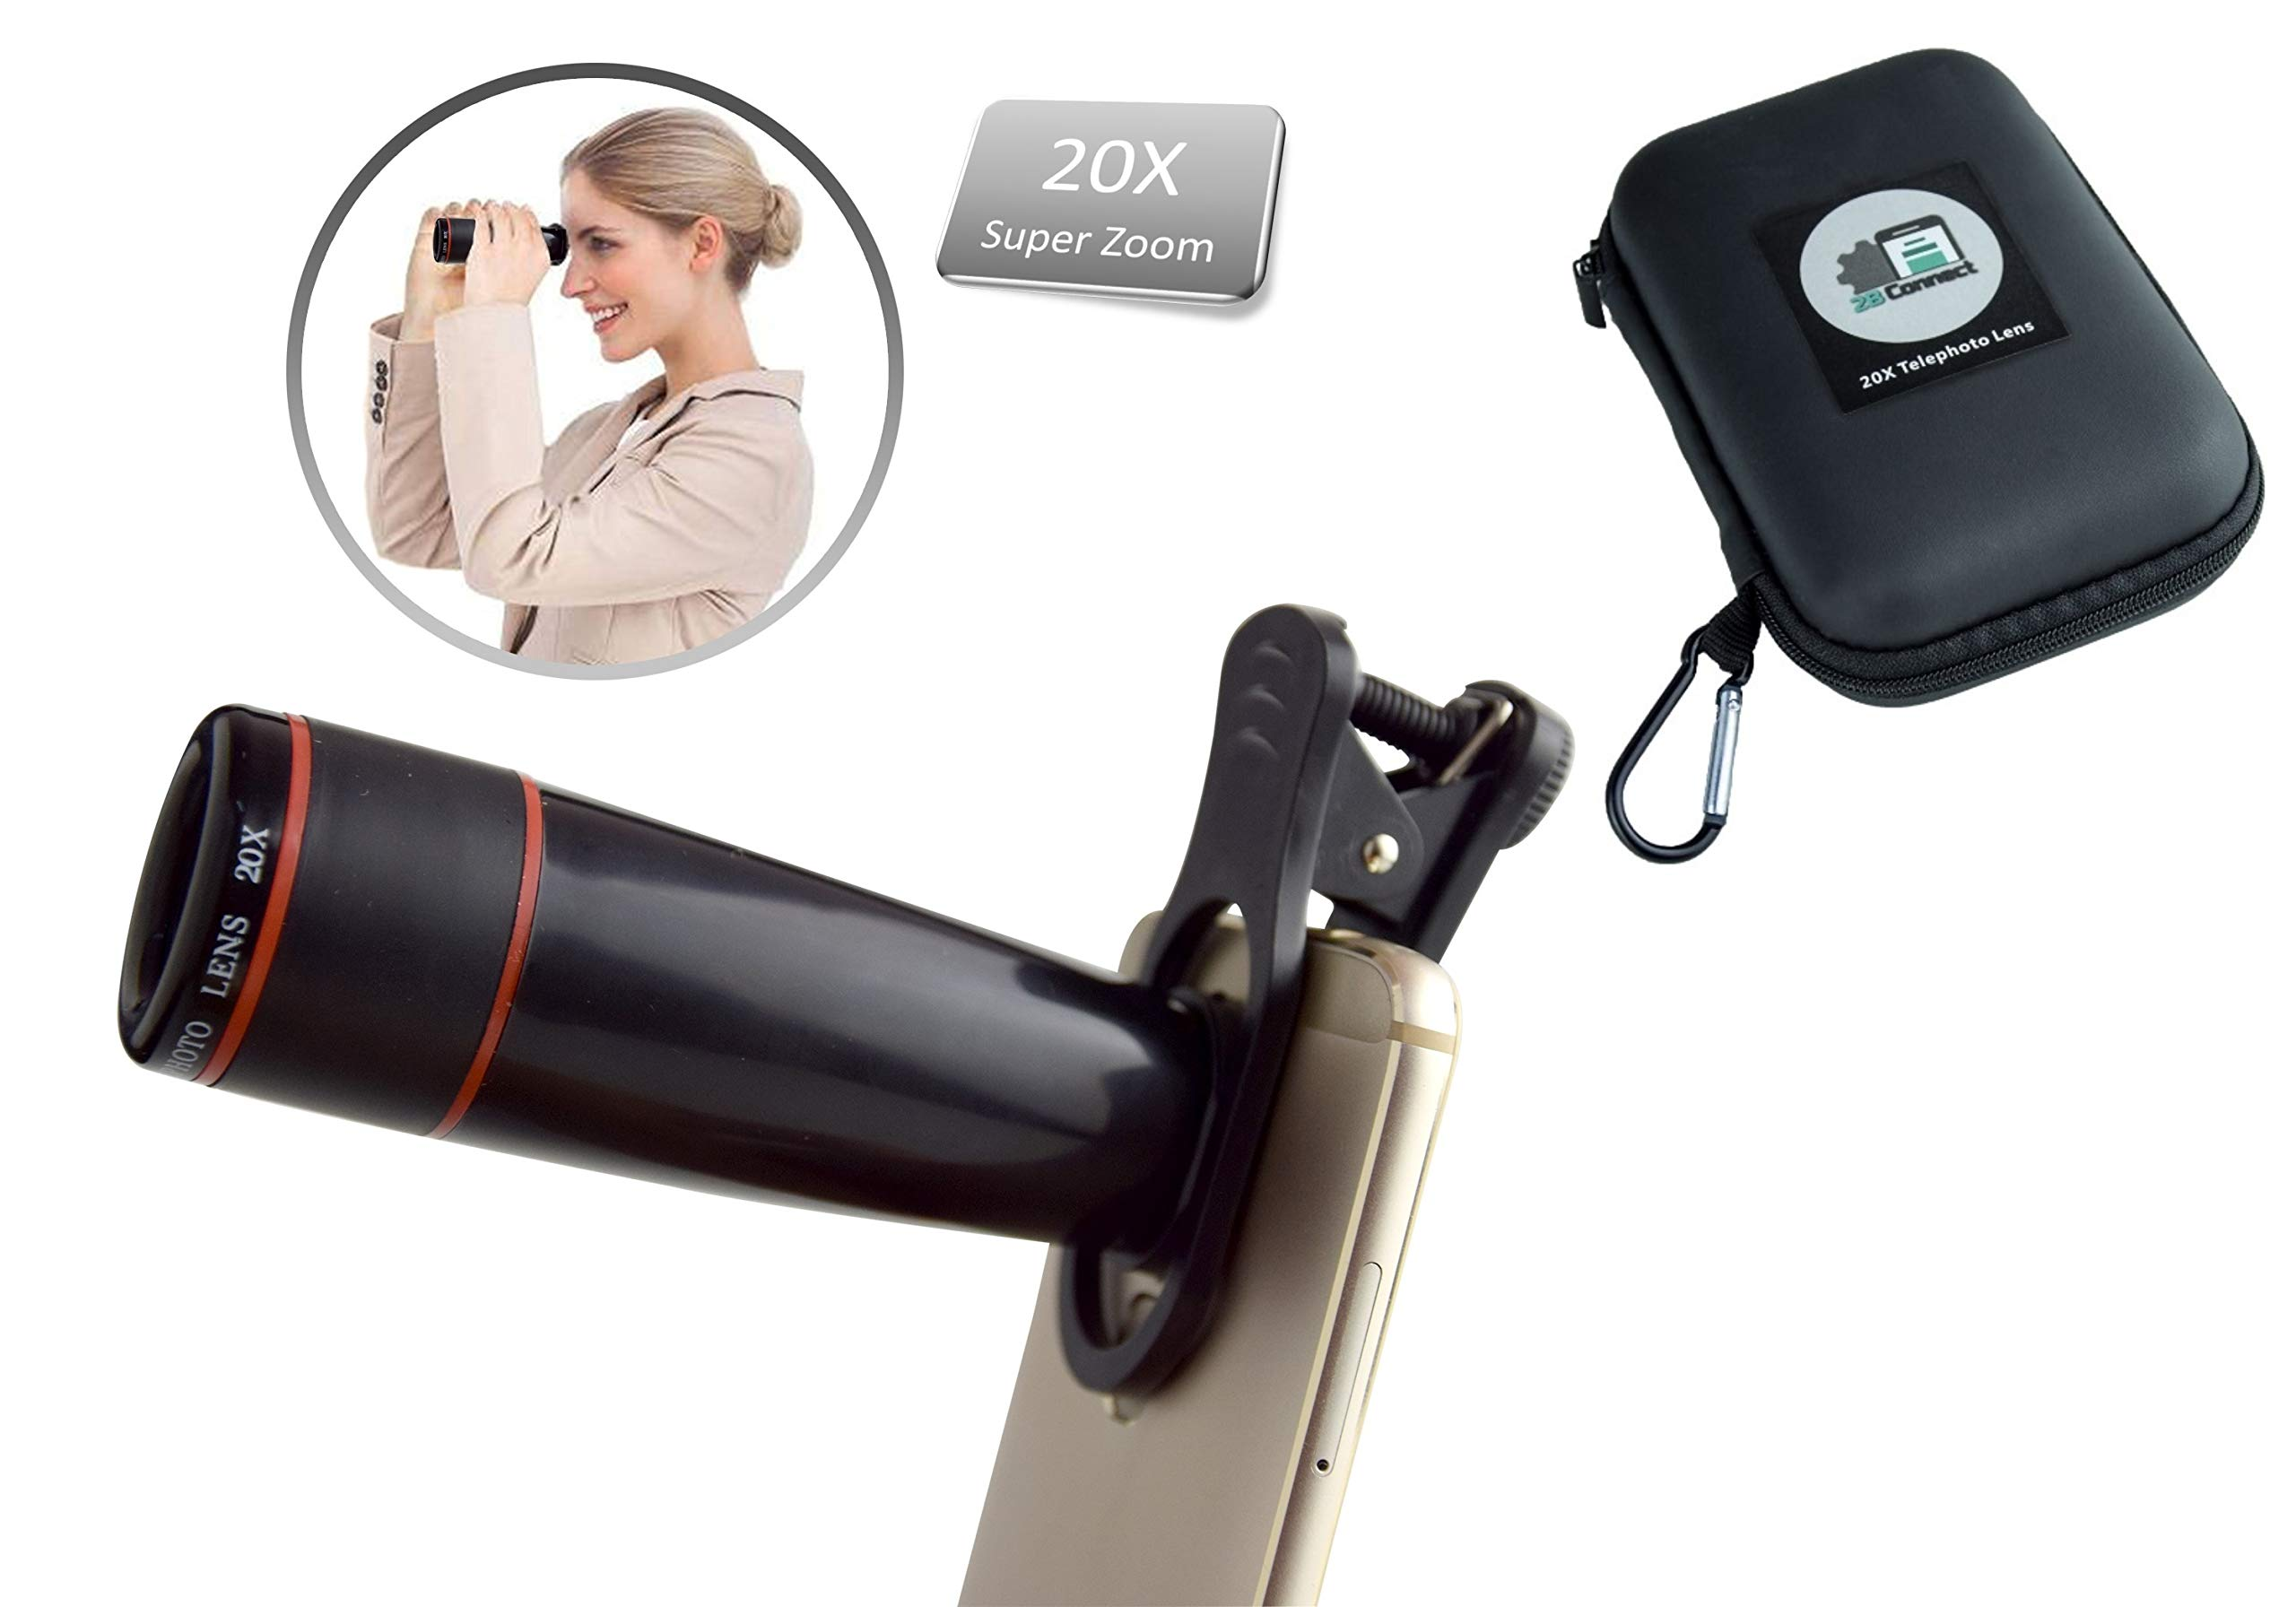 2BConnect Cell Phone Lens Telephoto Universal 20X Optical Zoom Lens. Universal Clamp Supports Most Smartphones Such as Samsung iPhone Camera Lens - Monocular Lens kit with Compact Elegant Carry case